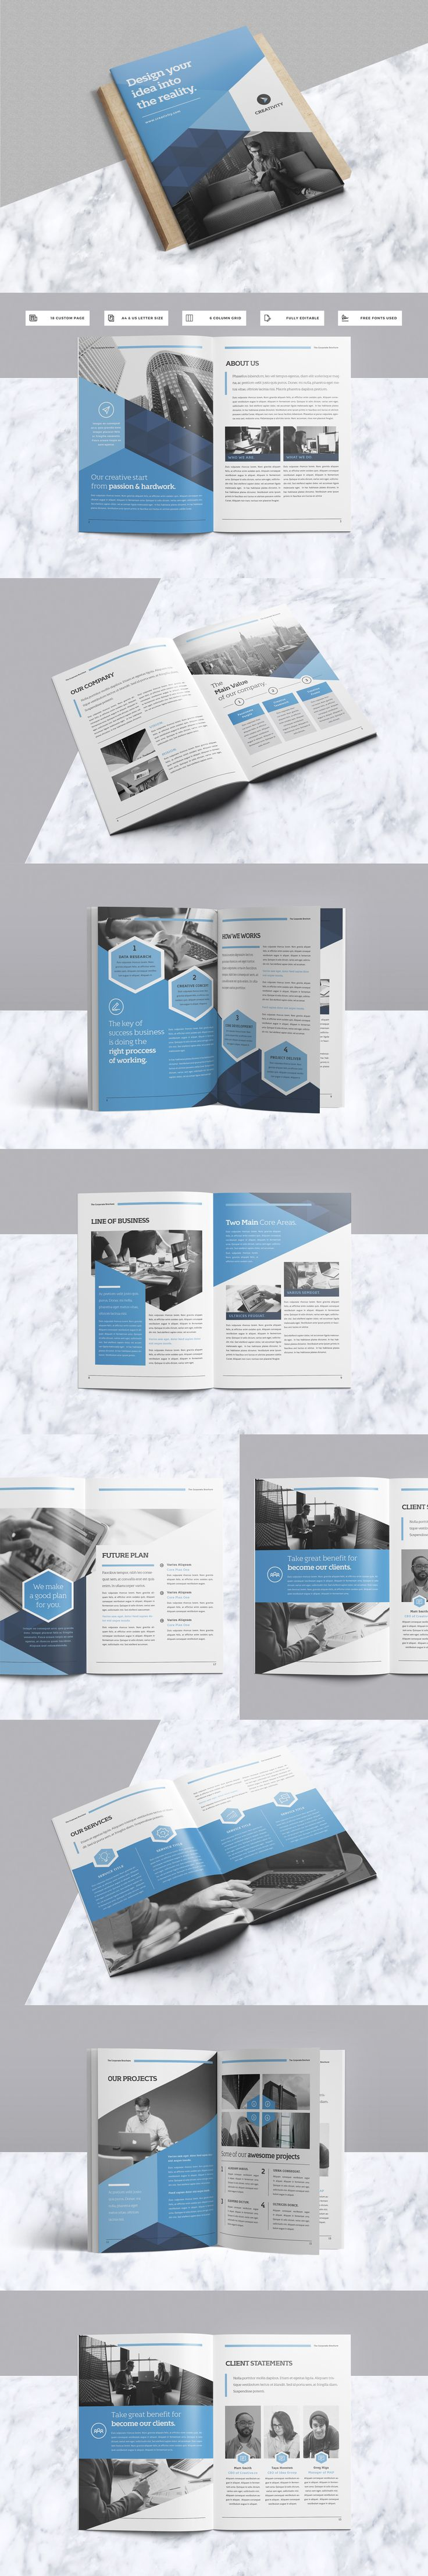 Modern & Professional Brochure 18 Pages Template InDesign INDD